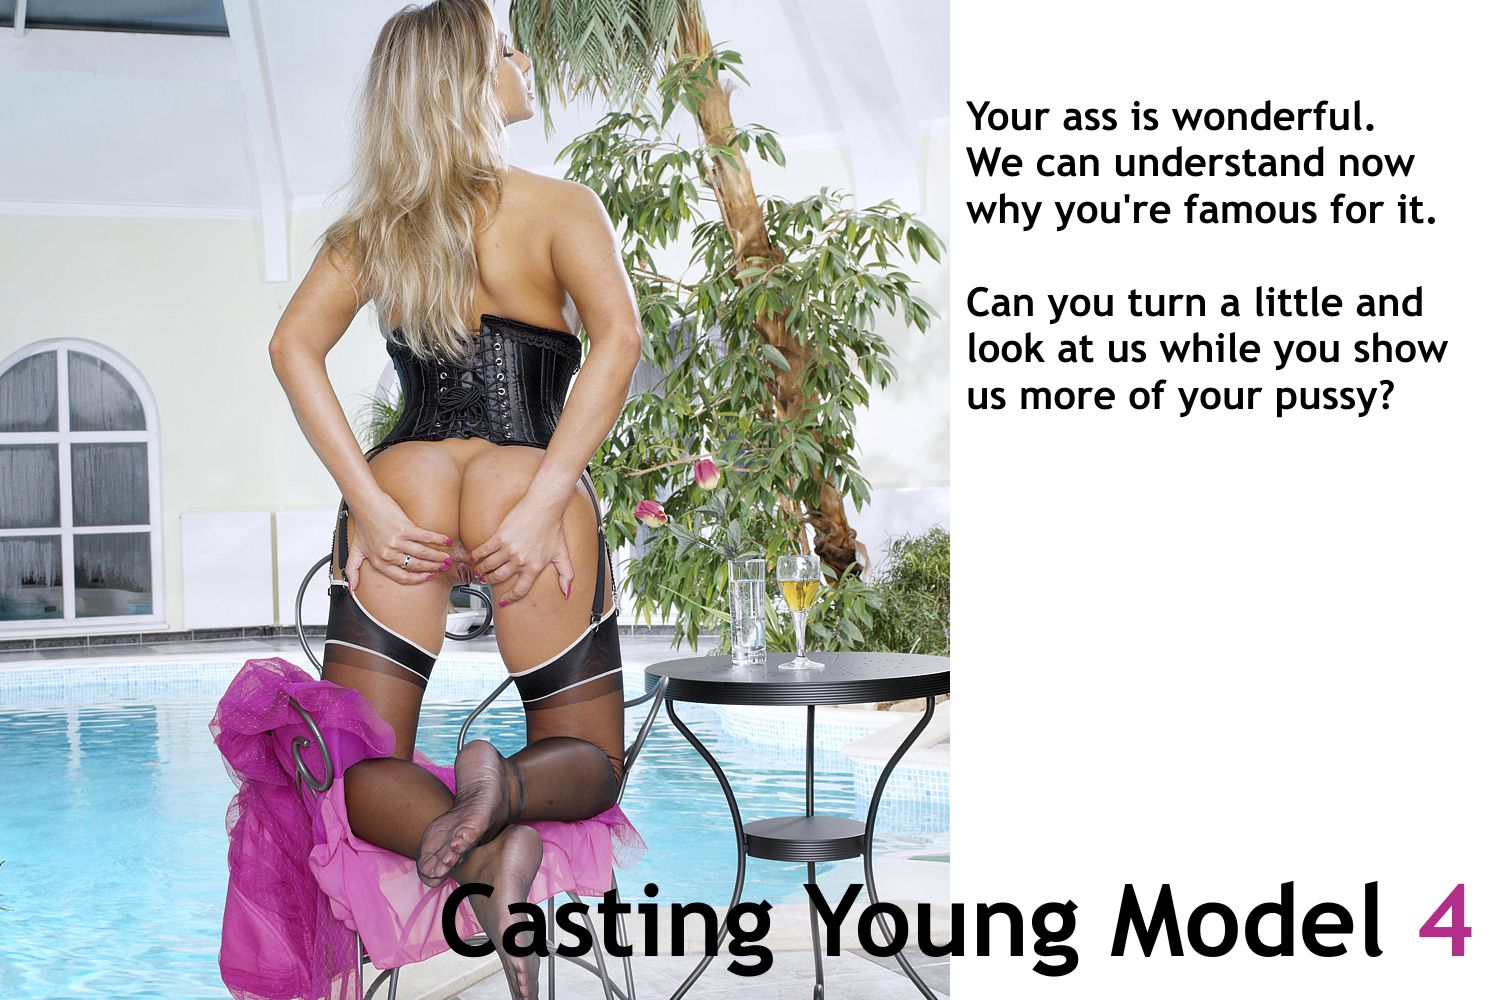 casting_young_model_4_007